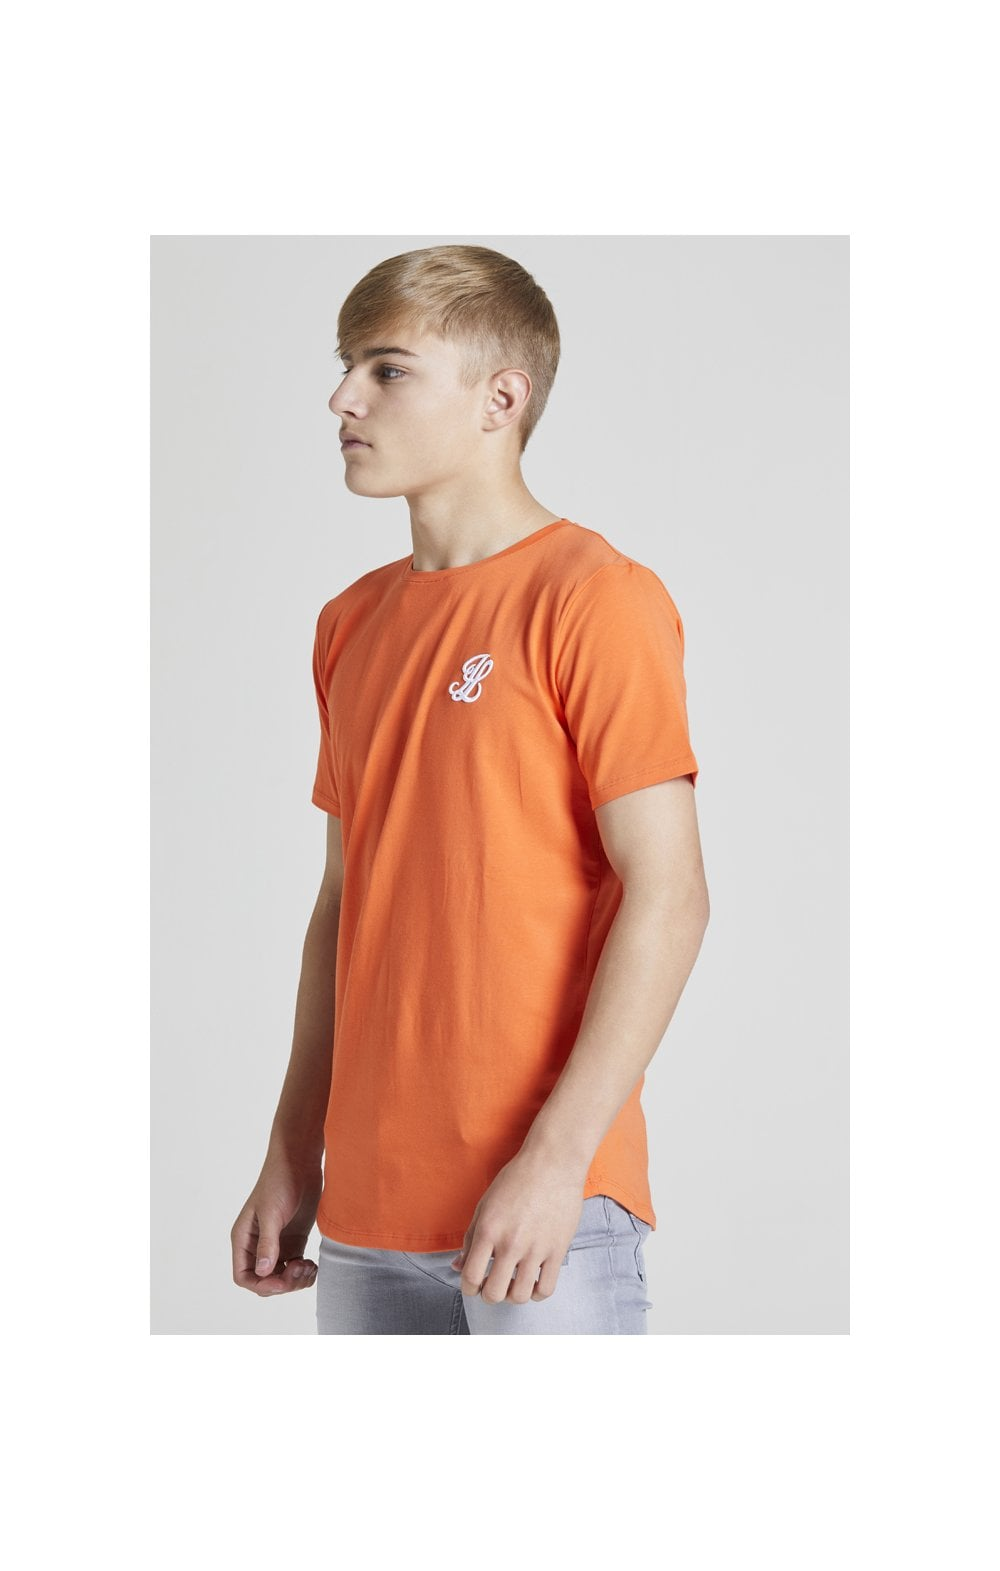 Illusive London Core Tee - Orange (2)